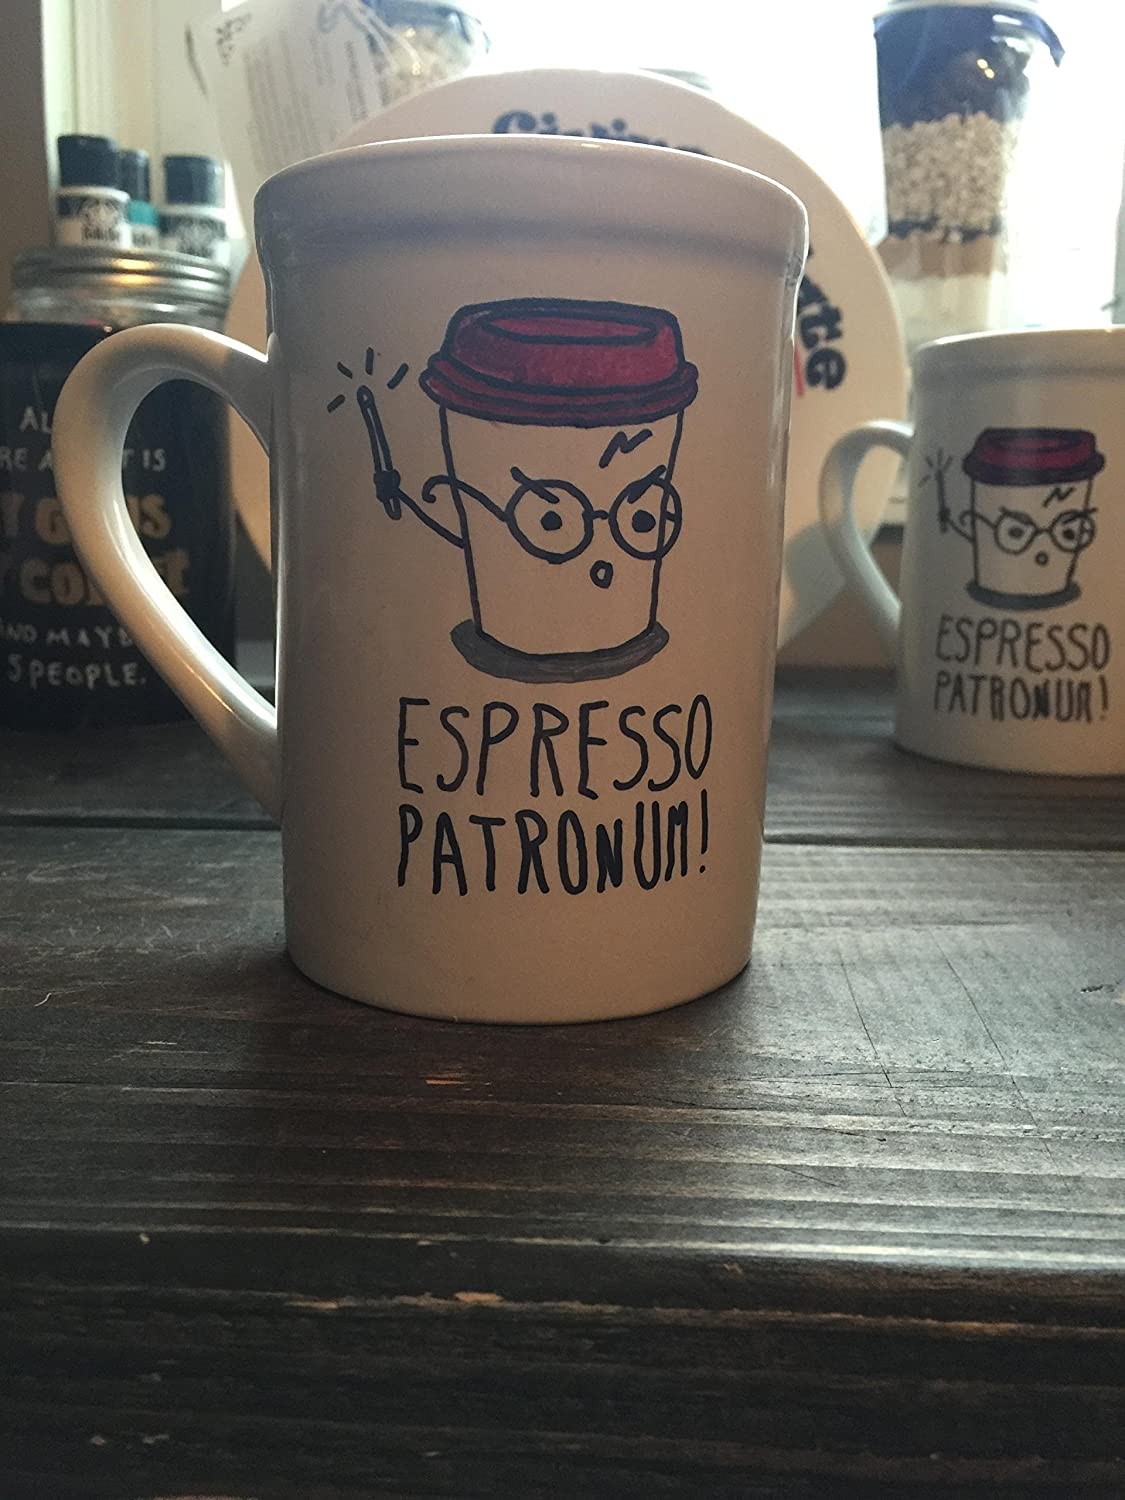 Amazon.com Harry Potter/Harry Potter Hand Painted Mug/Harry Potter Gift/Harry Potter Birthday/Harry Potter Gift Ideas/Espresso Patronum/Gift Handmade & Amazon.com: Harry Potter/Harry Potter Hand Painted Mug/Harry Potter ...